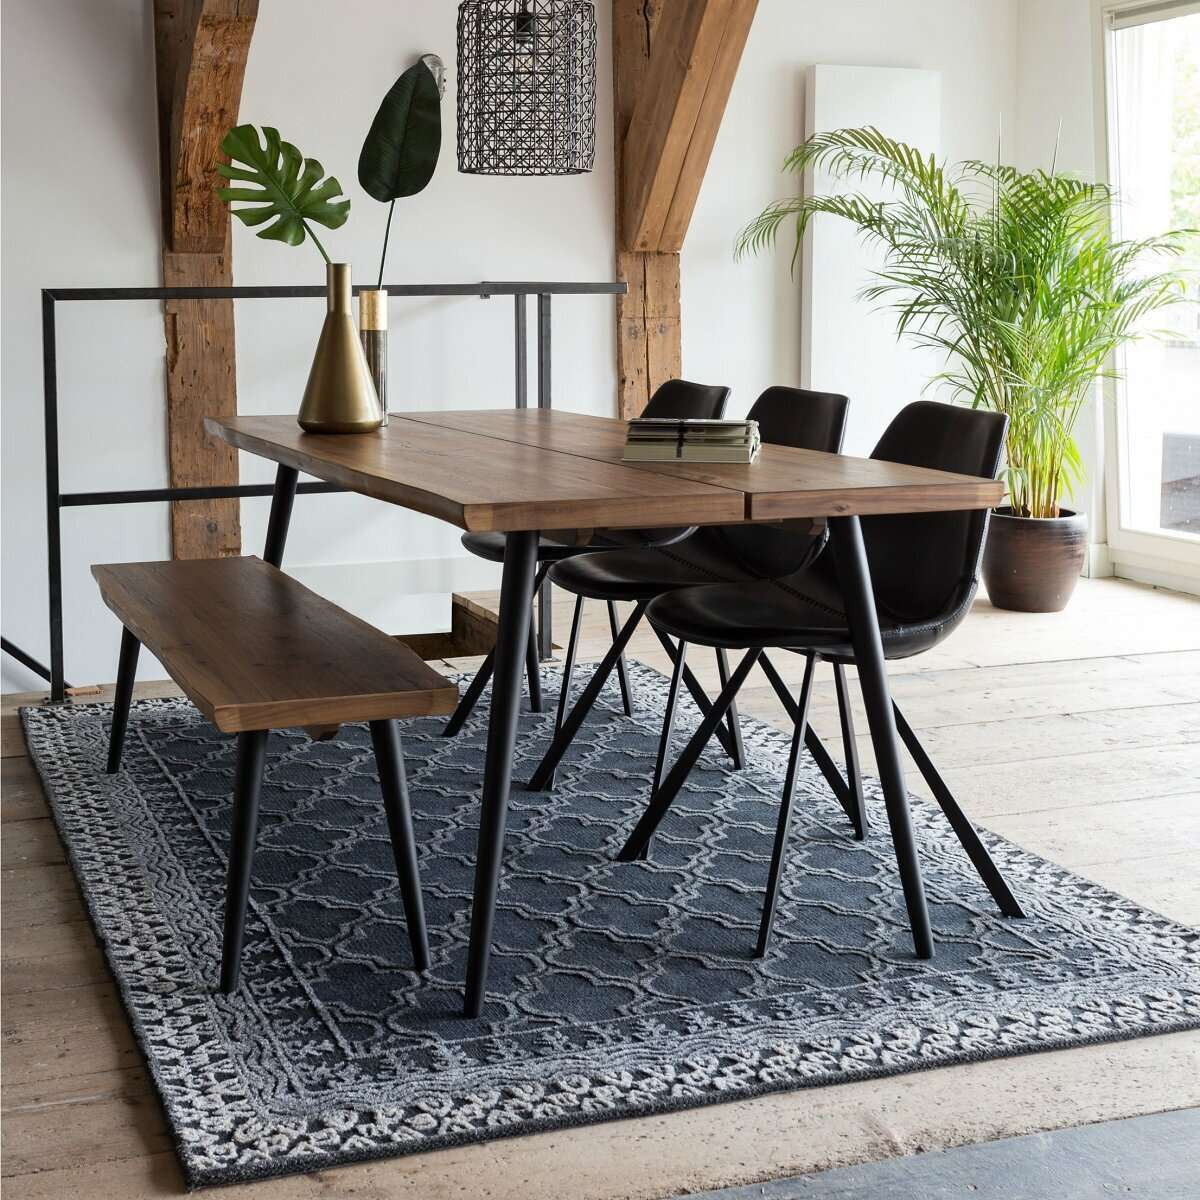 Dining Tables Accessories Image Collections Dining Table Ideas